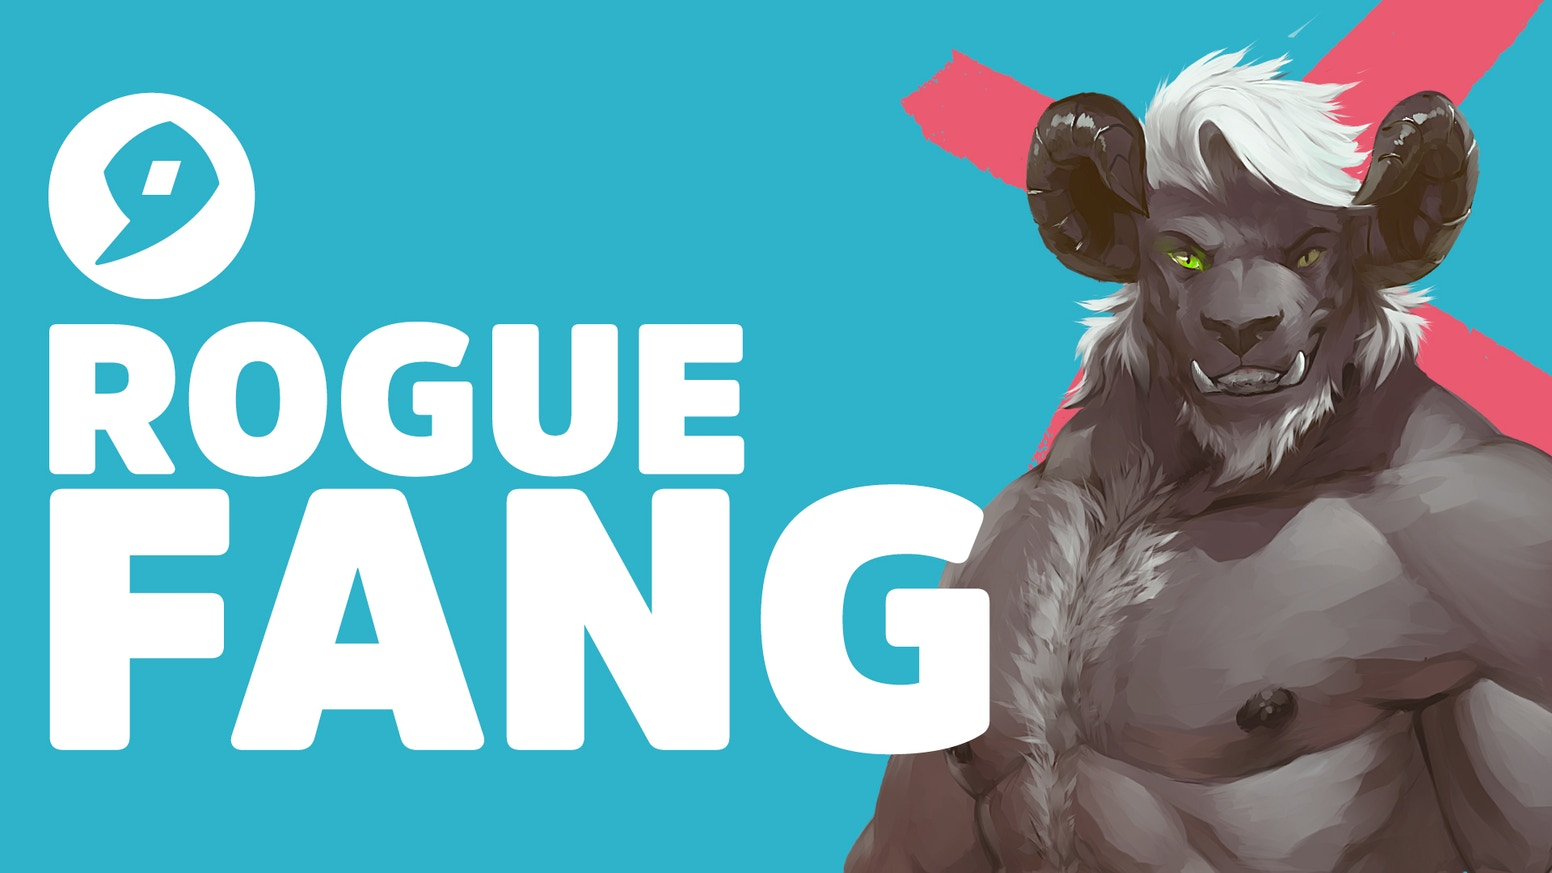 Rogue Fang - Absolute Jocks  by Jesus Aparicio Calvo